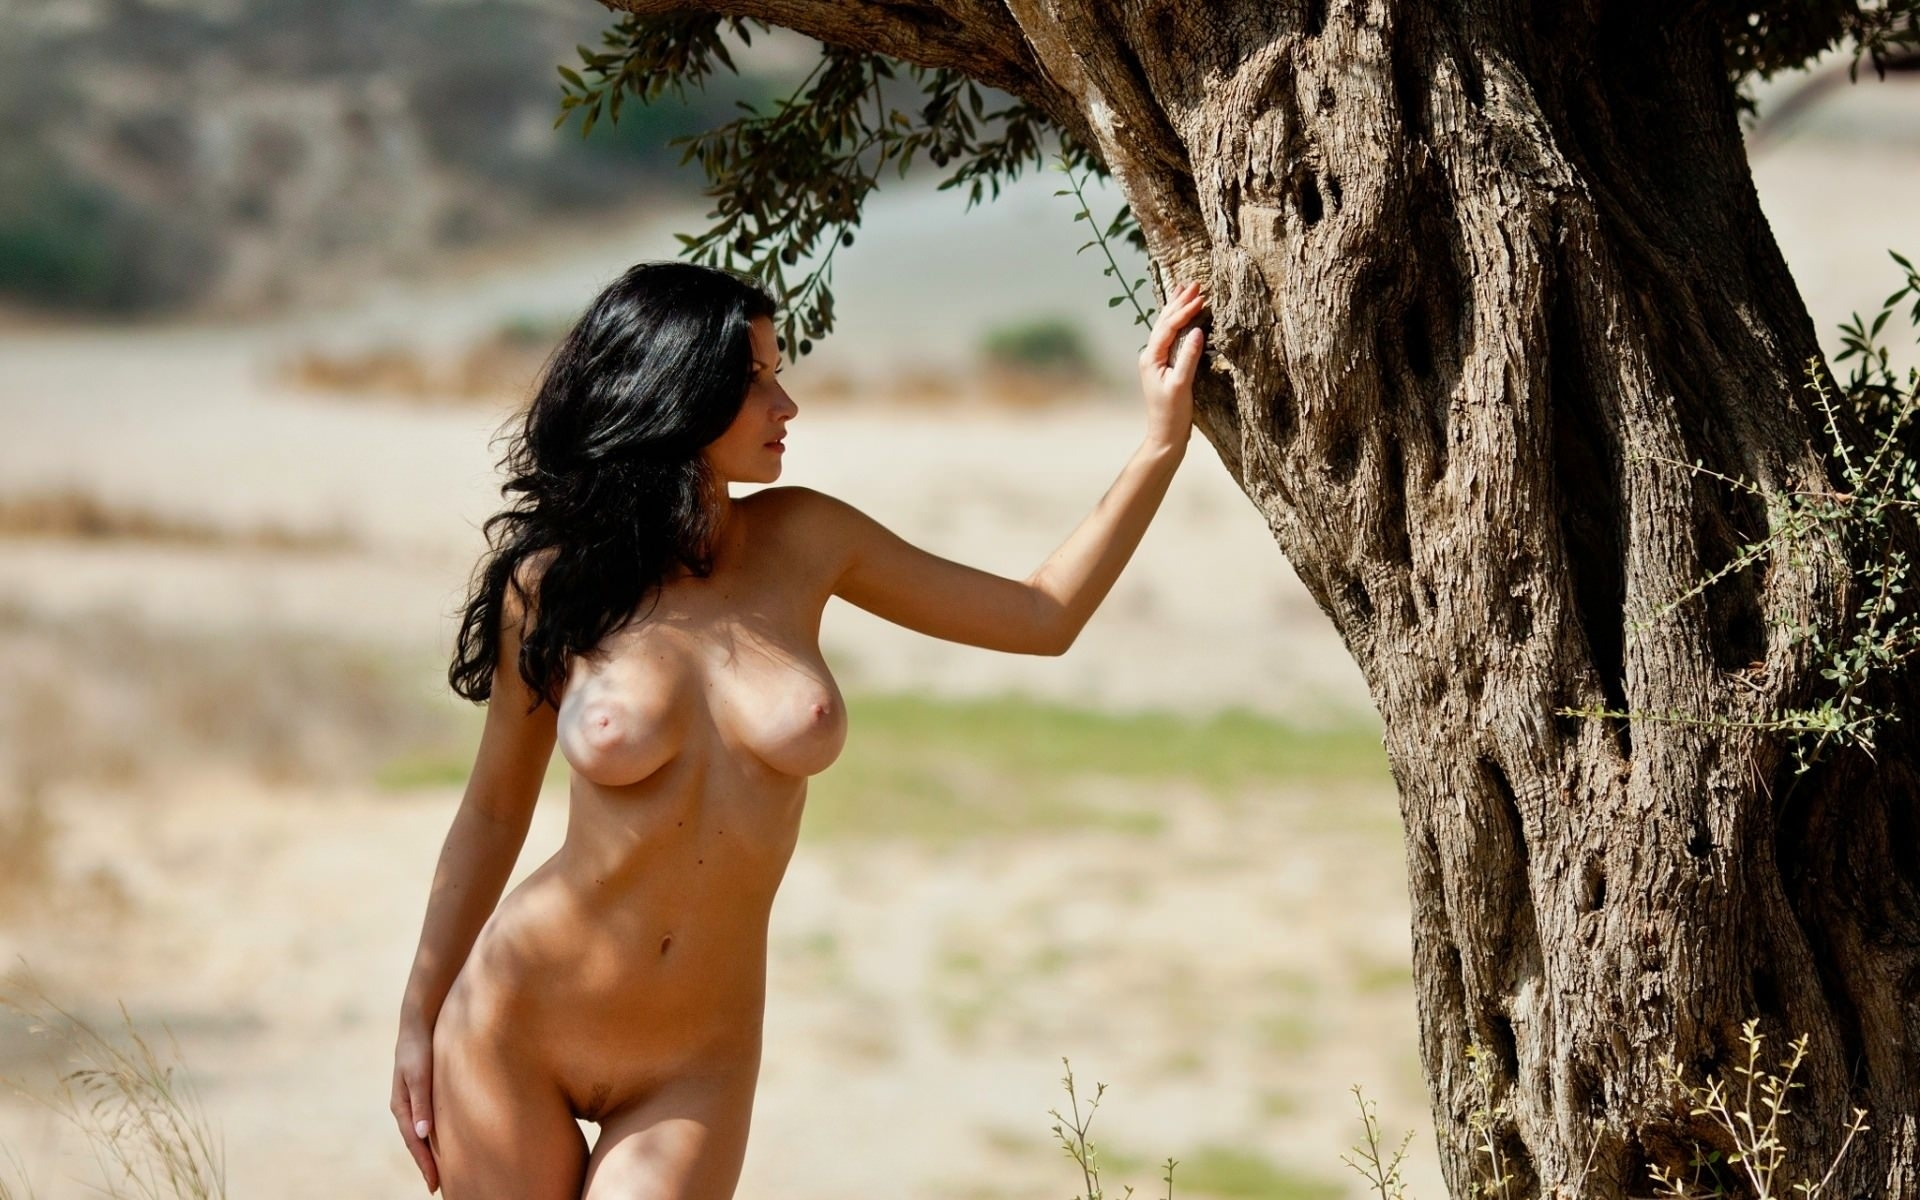 Ethnic nude girls hq pictures